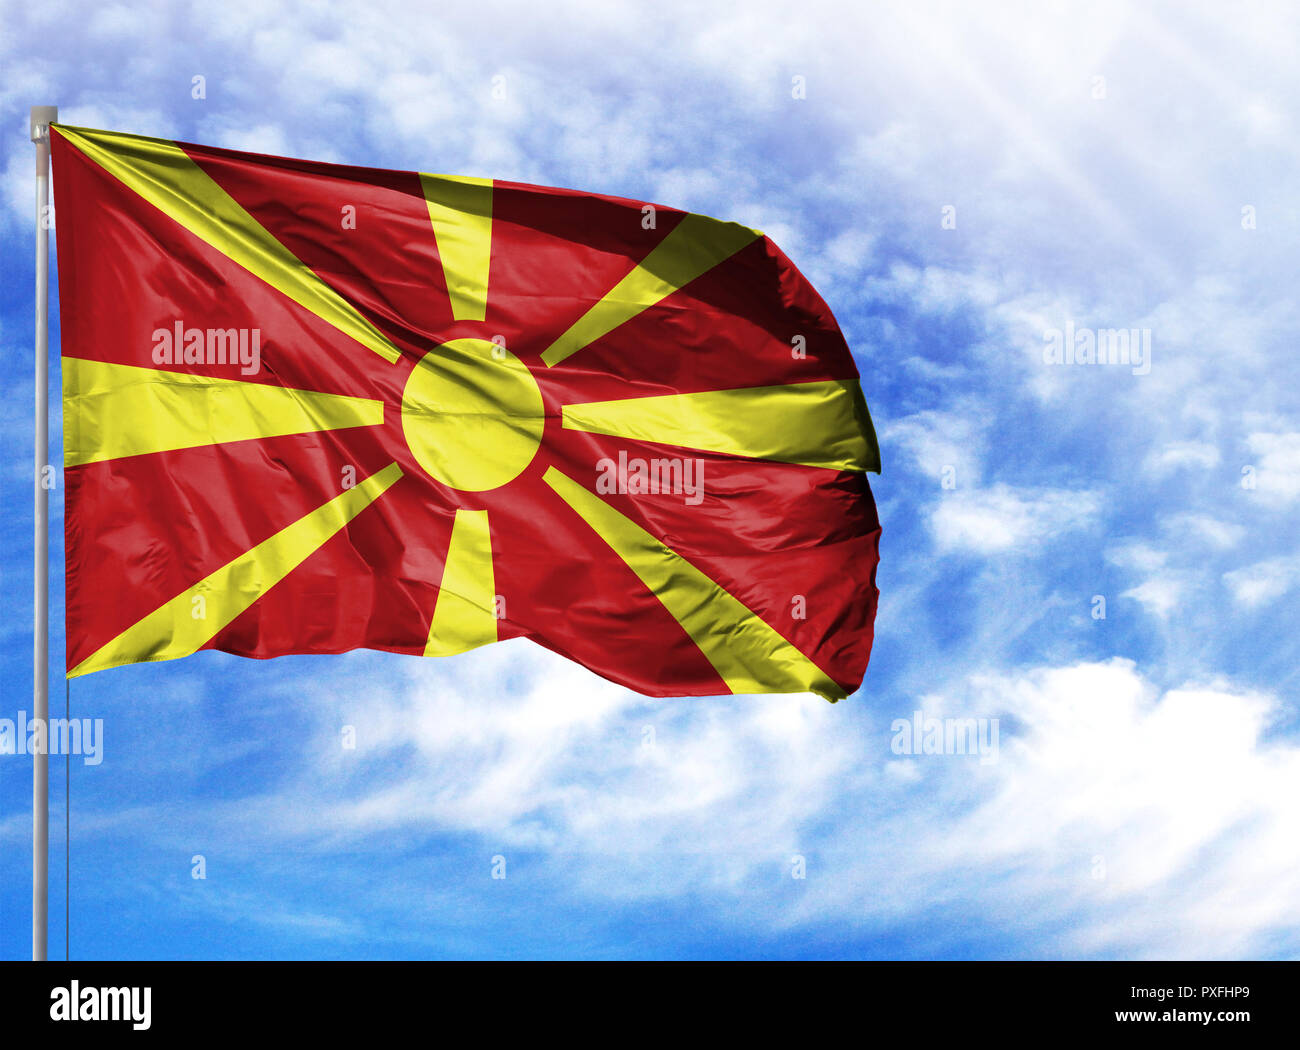 National flag of Macedonia on a flagpole in front of blue sky. - Stock Image